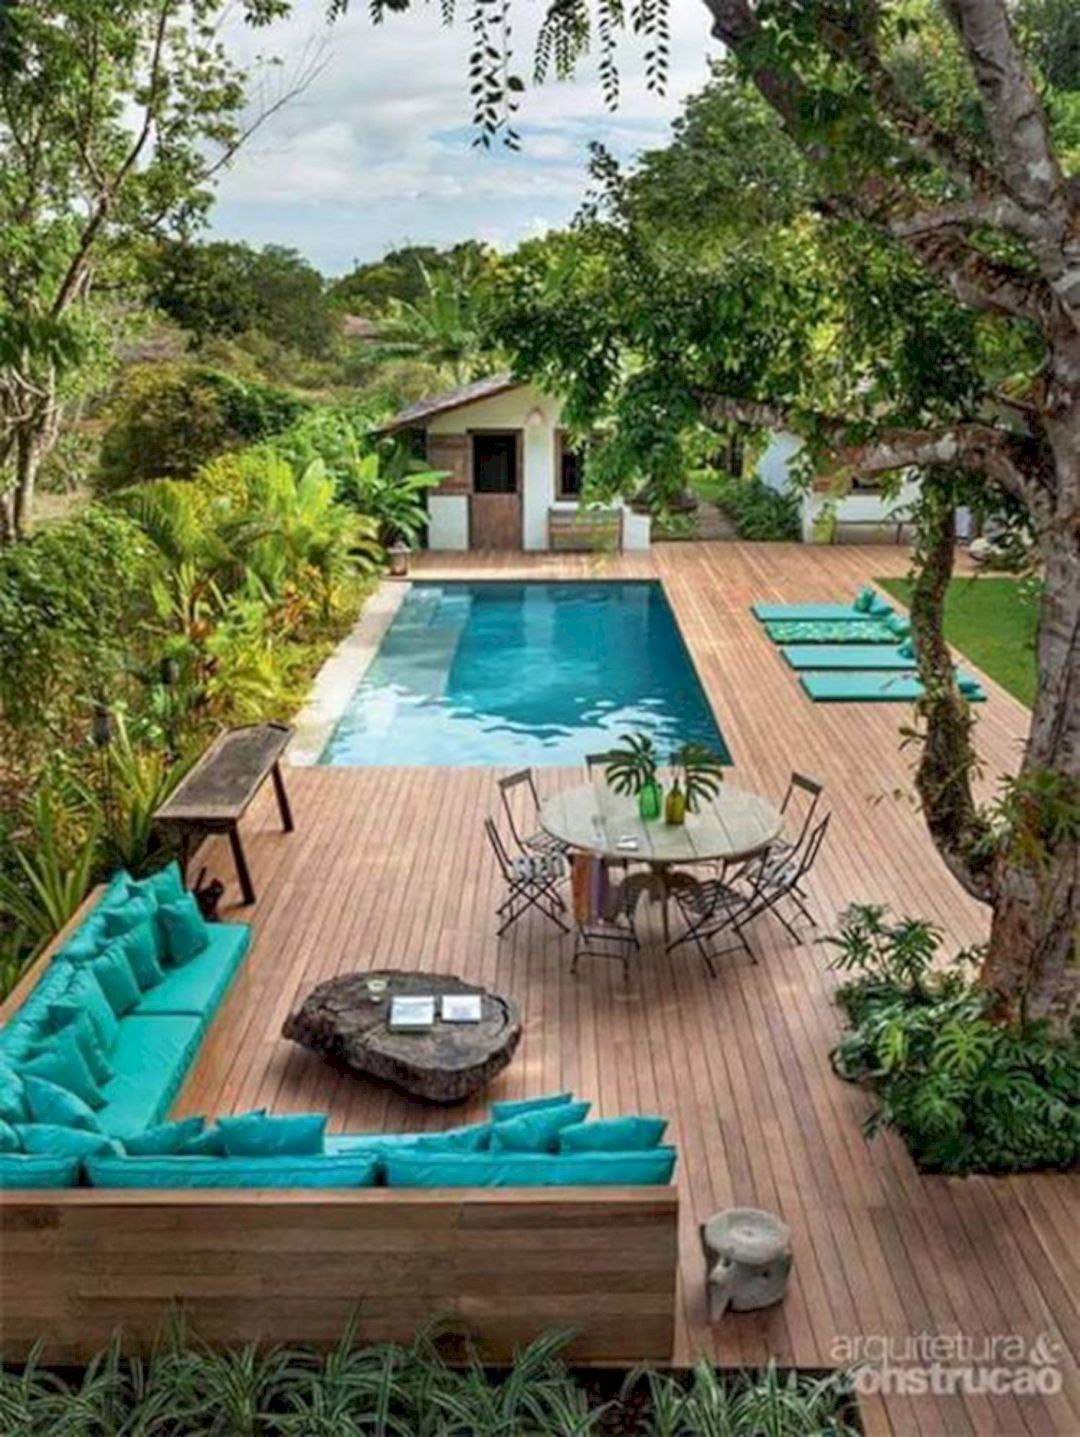 Coolest Small Pool Ideas: 155 Nice Example Photos Photo